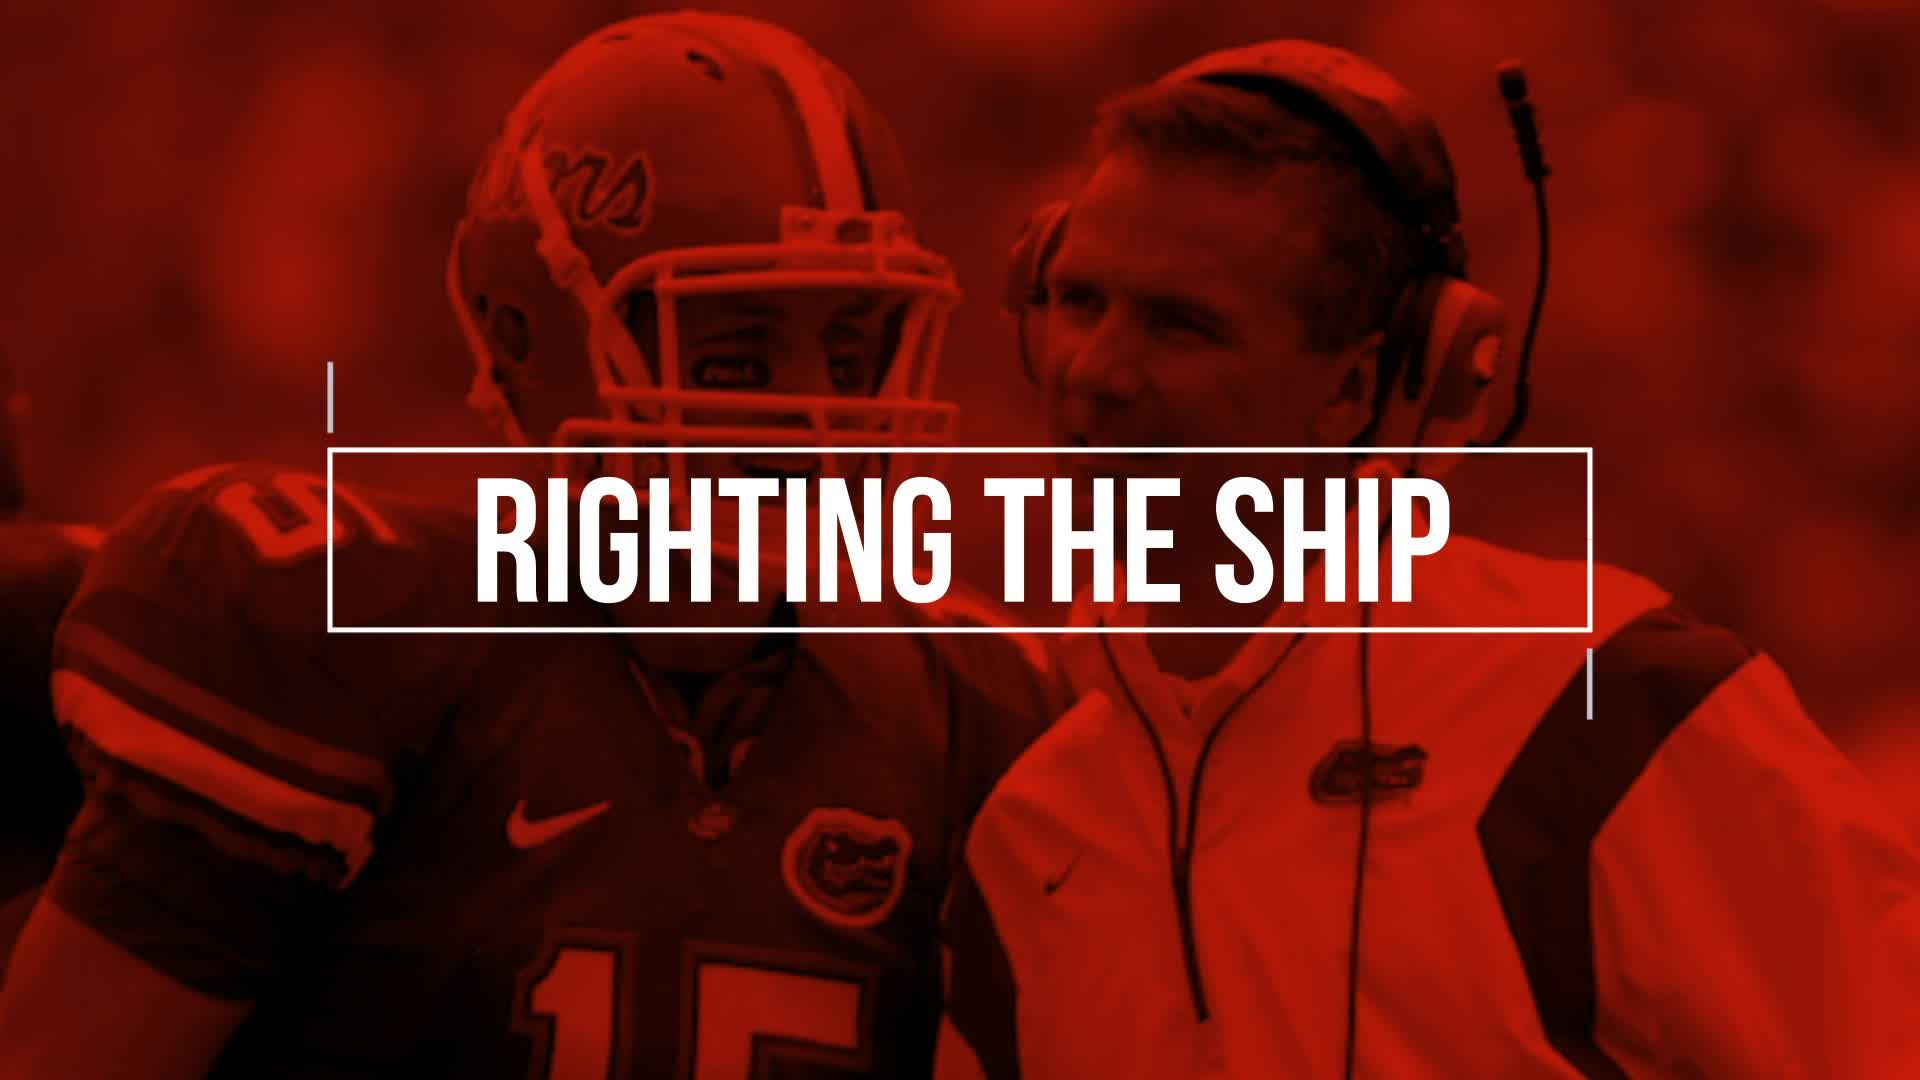 Righting The Ship